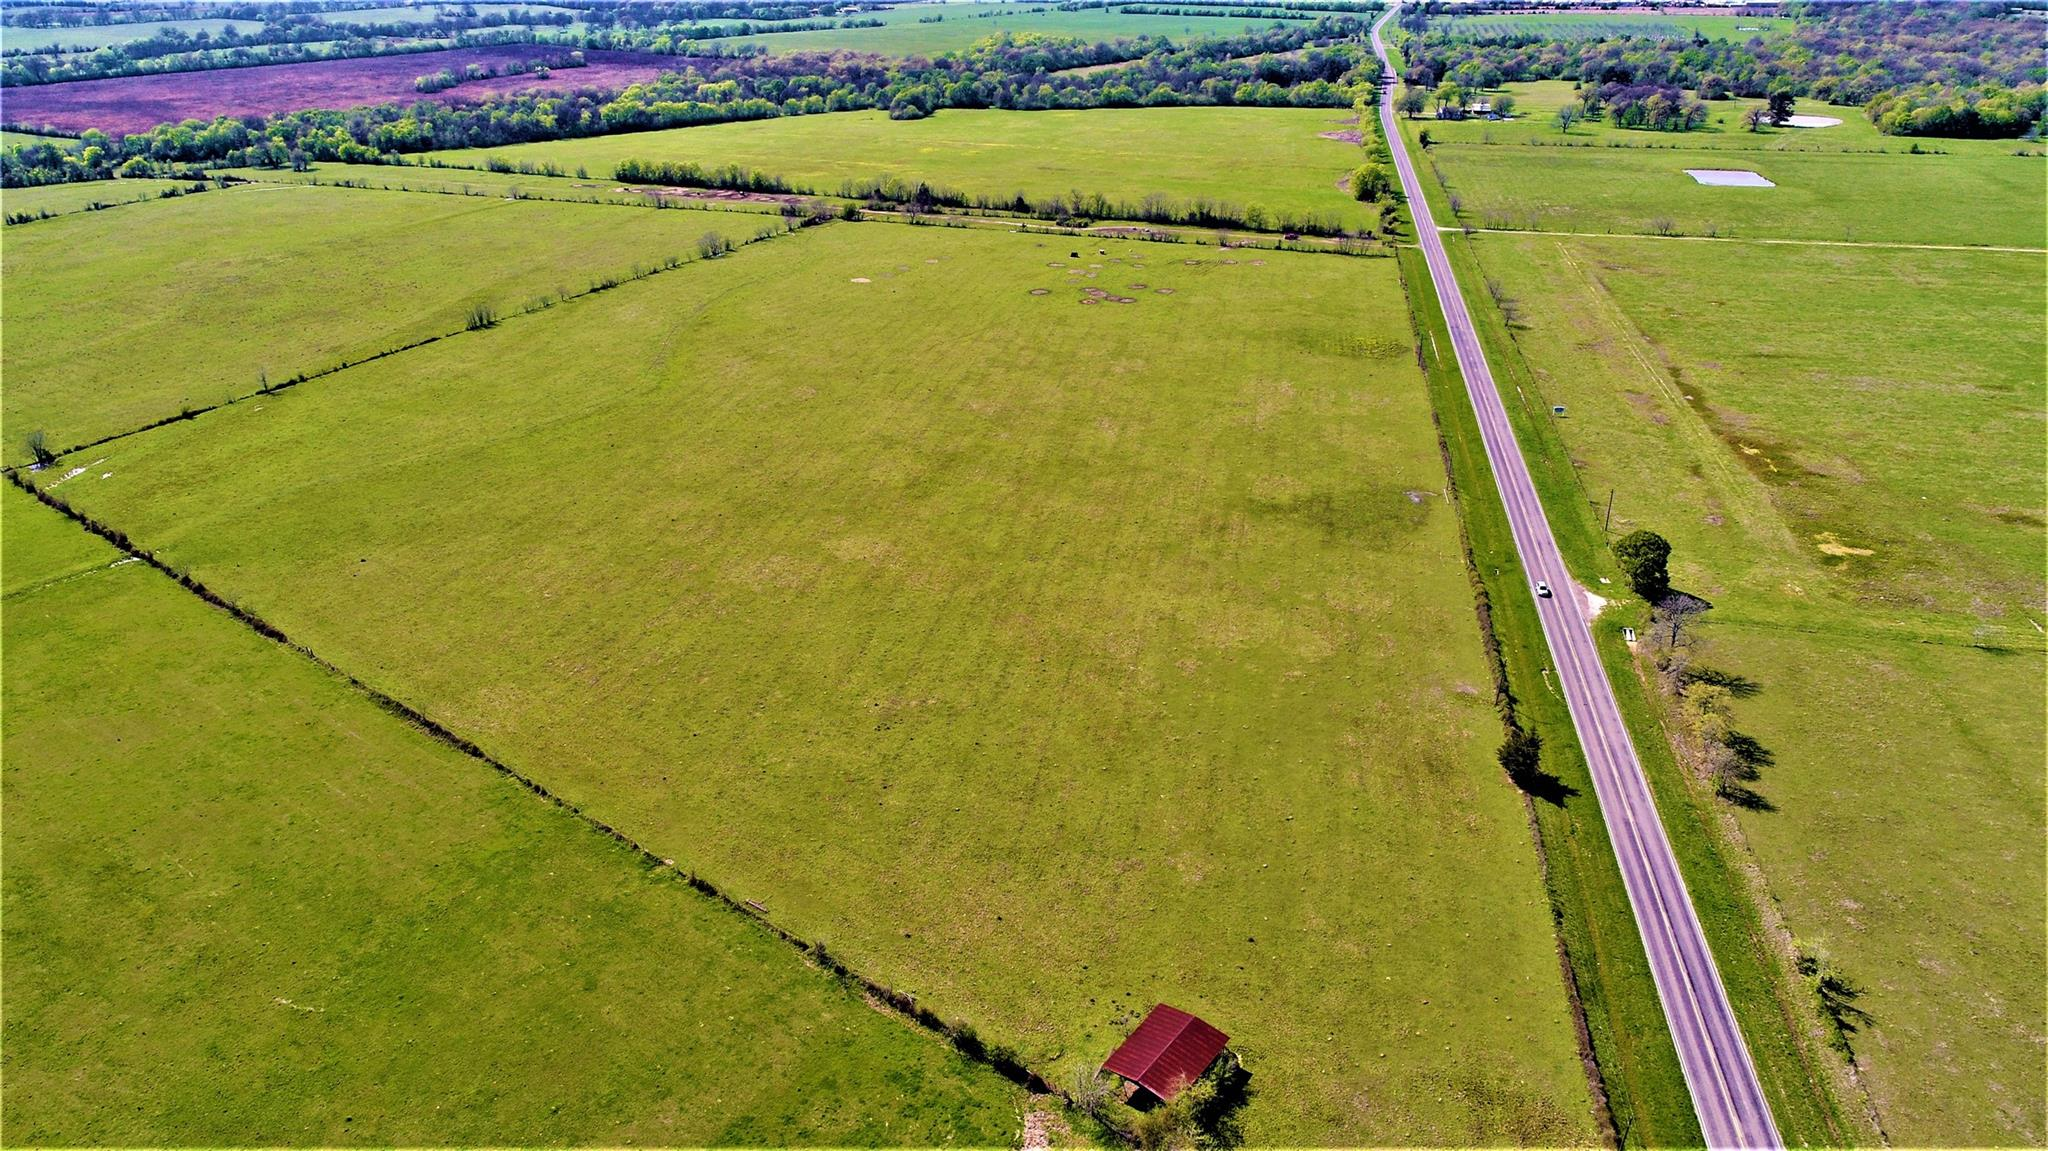 0 S US Hwy 287 Property Photo - Crockett, TX real estate listing